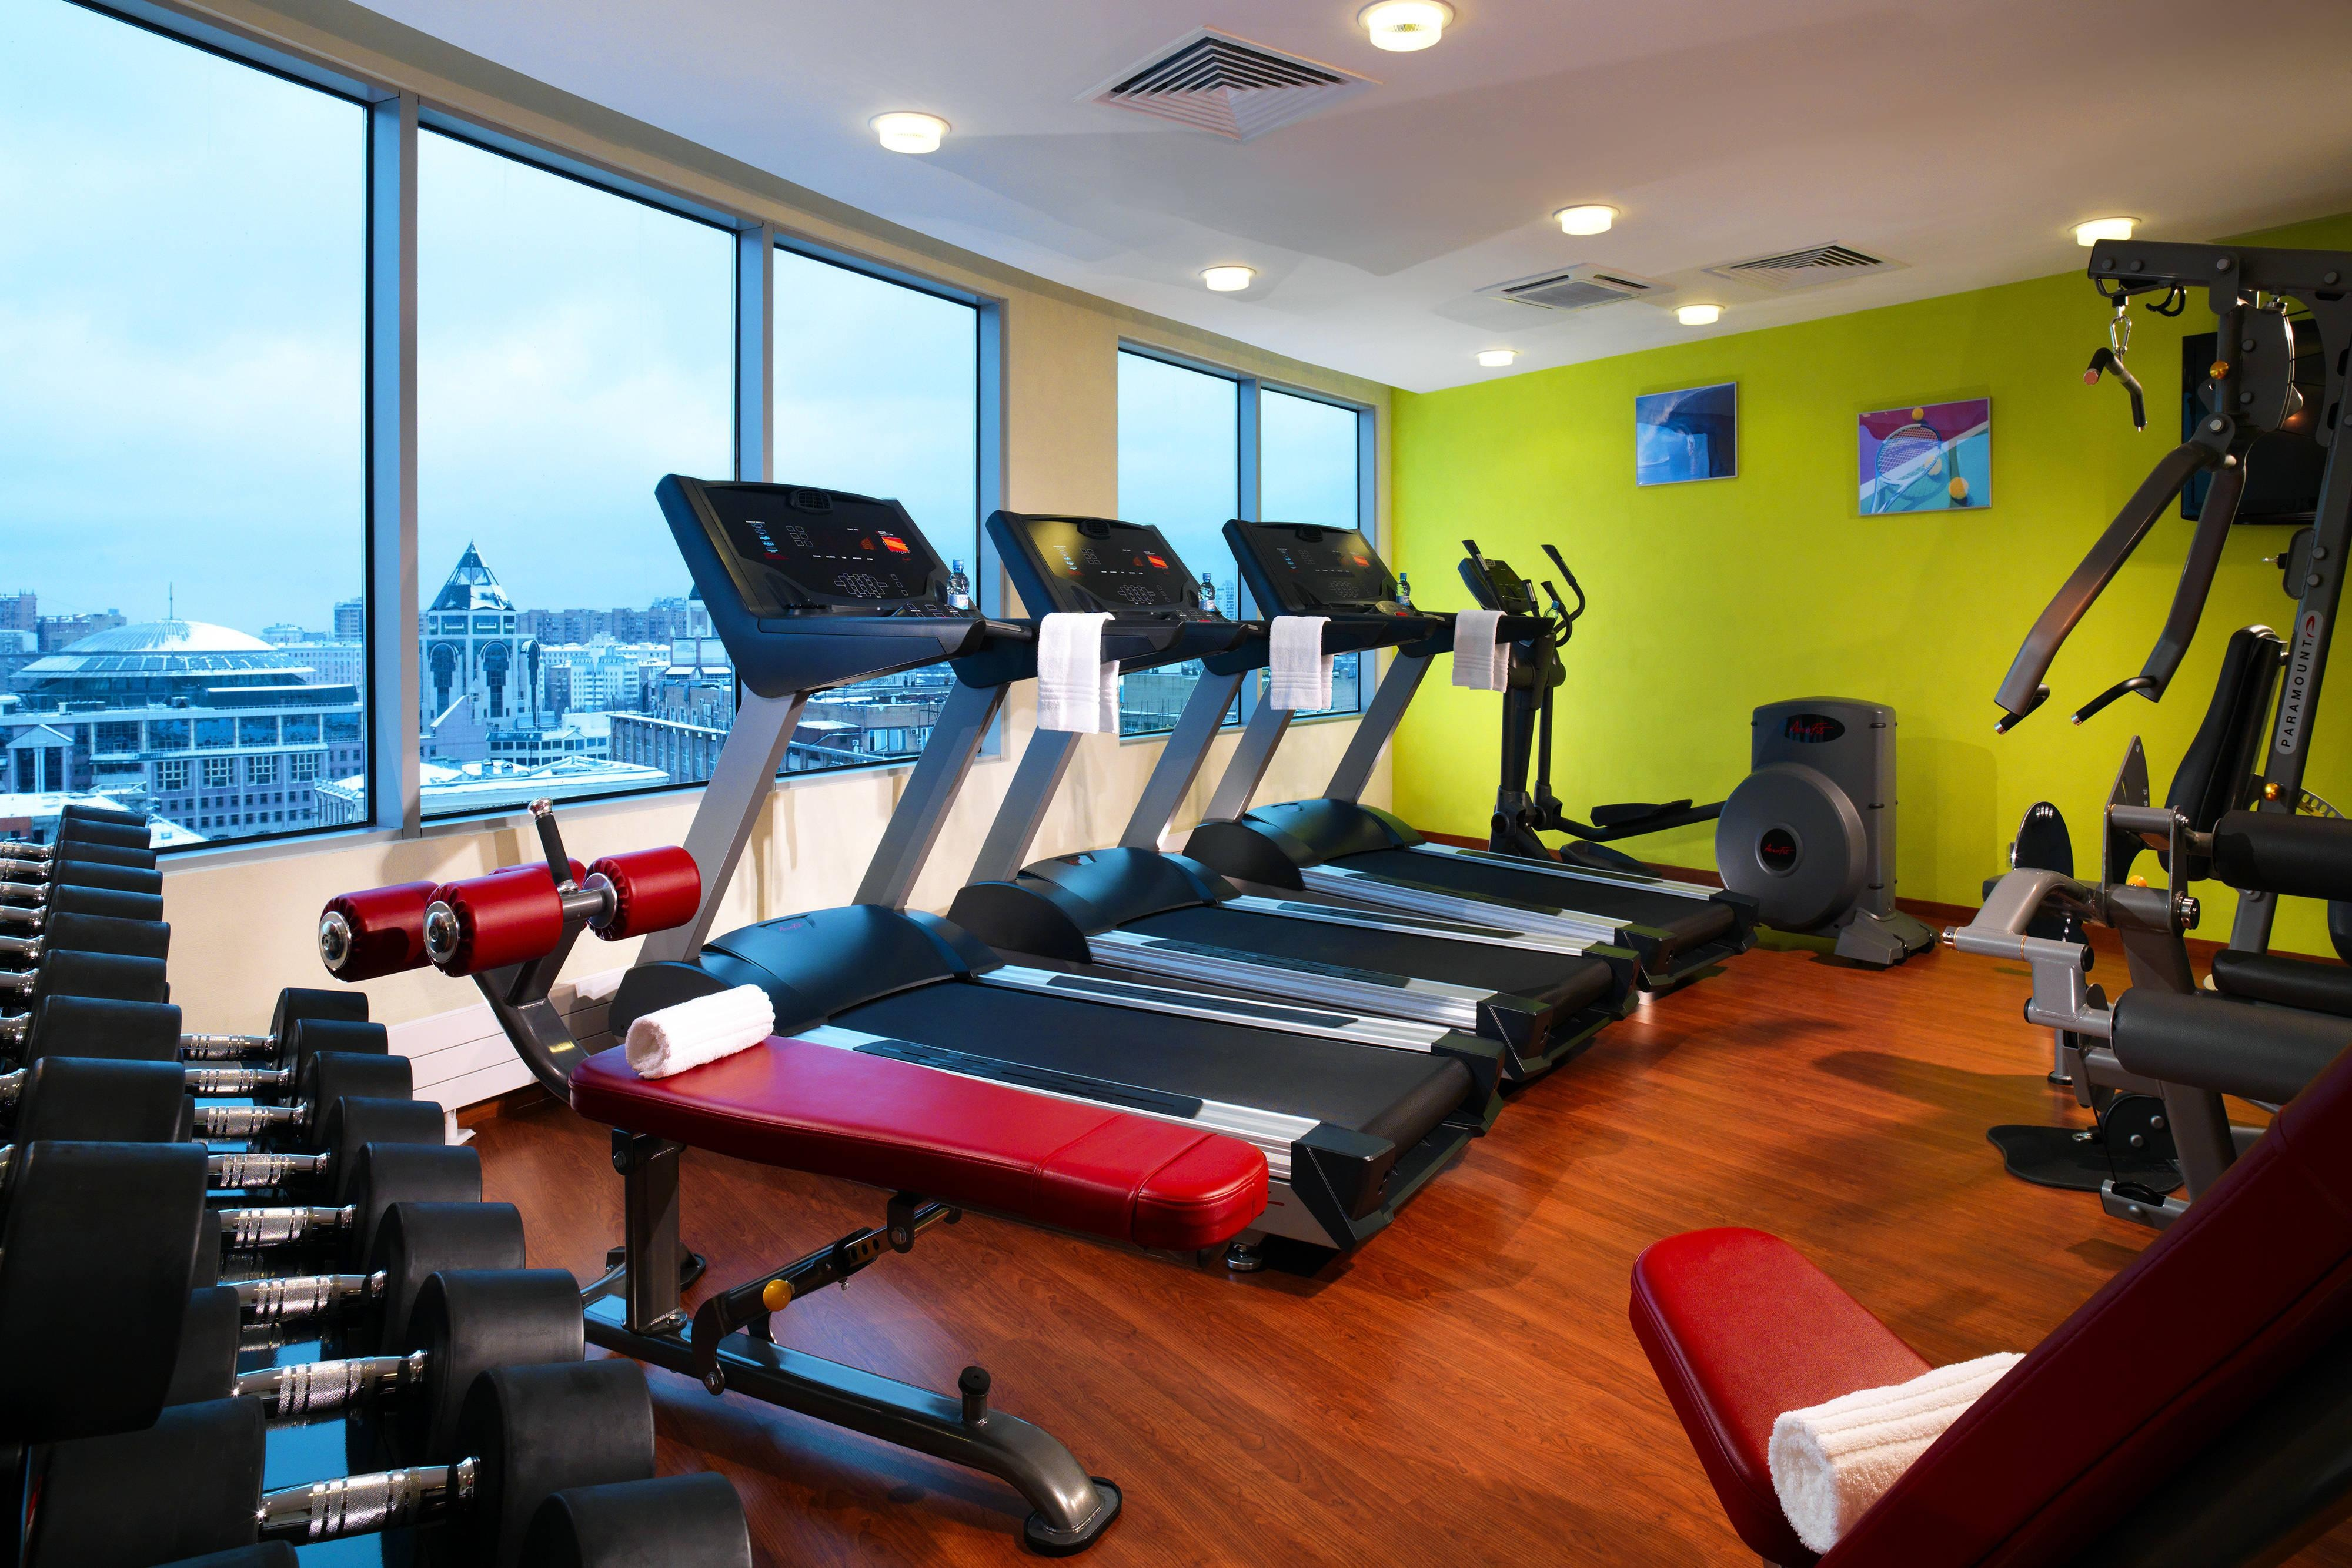 Moscow Hotel Fitness